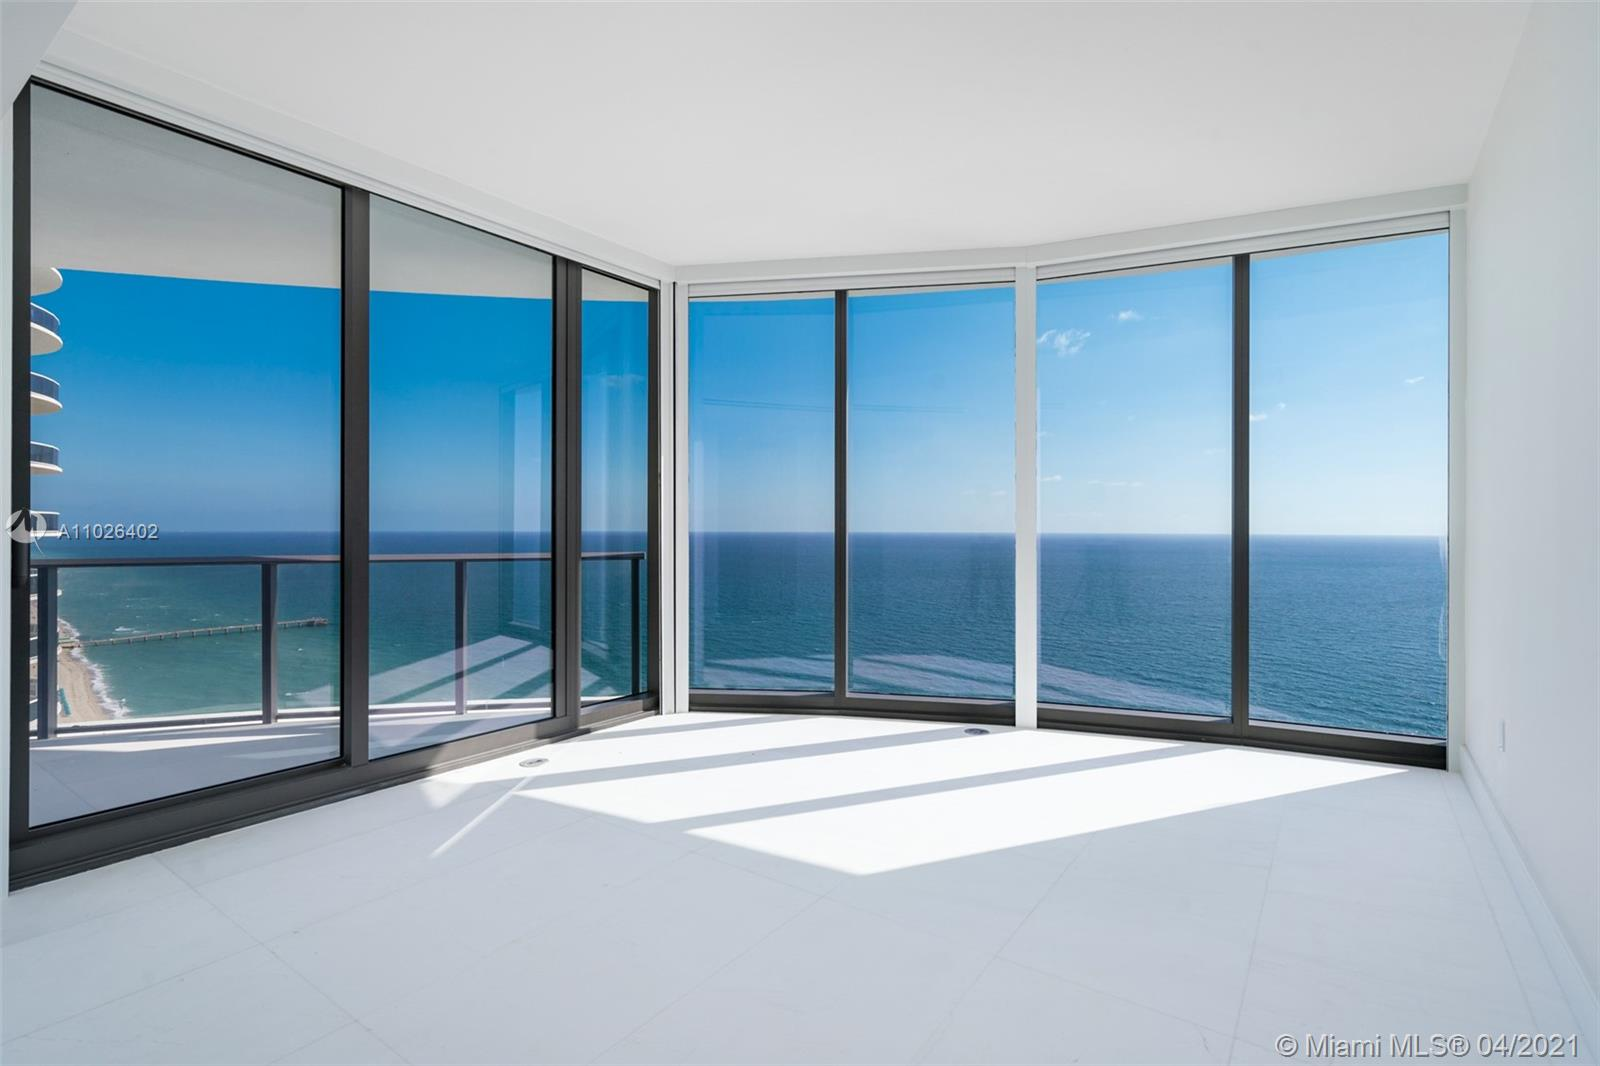 Spectacular wrap around,  This 3 Bed +Den + Staff Room corner residence with floor-to-ceiling glass windows offers direct ocean and flow-through views and plenty of natural light! The den is unique in that it has windows and connects to a bathroom, making it a very versatile space for owners to enjoy as a family room, office, dining room or even a 4th bedroom.  Ritz Carlton manages with the brand, all within the privacy of an entirely residential building.  Owners will experience  5* star services throughout this resort making this the ultimate vacation home.  Fully finished ready to move in,  Ritz includes a full arrange of amenities, gym, spa, hair salon, private treatment rooms, kids club, pool bar and restaurant.